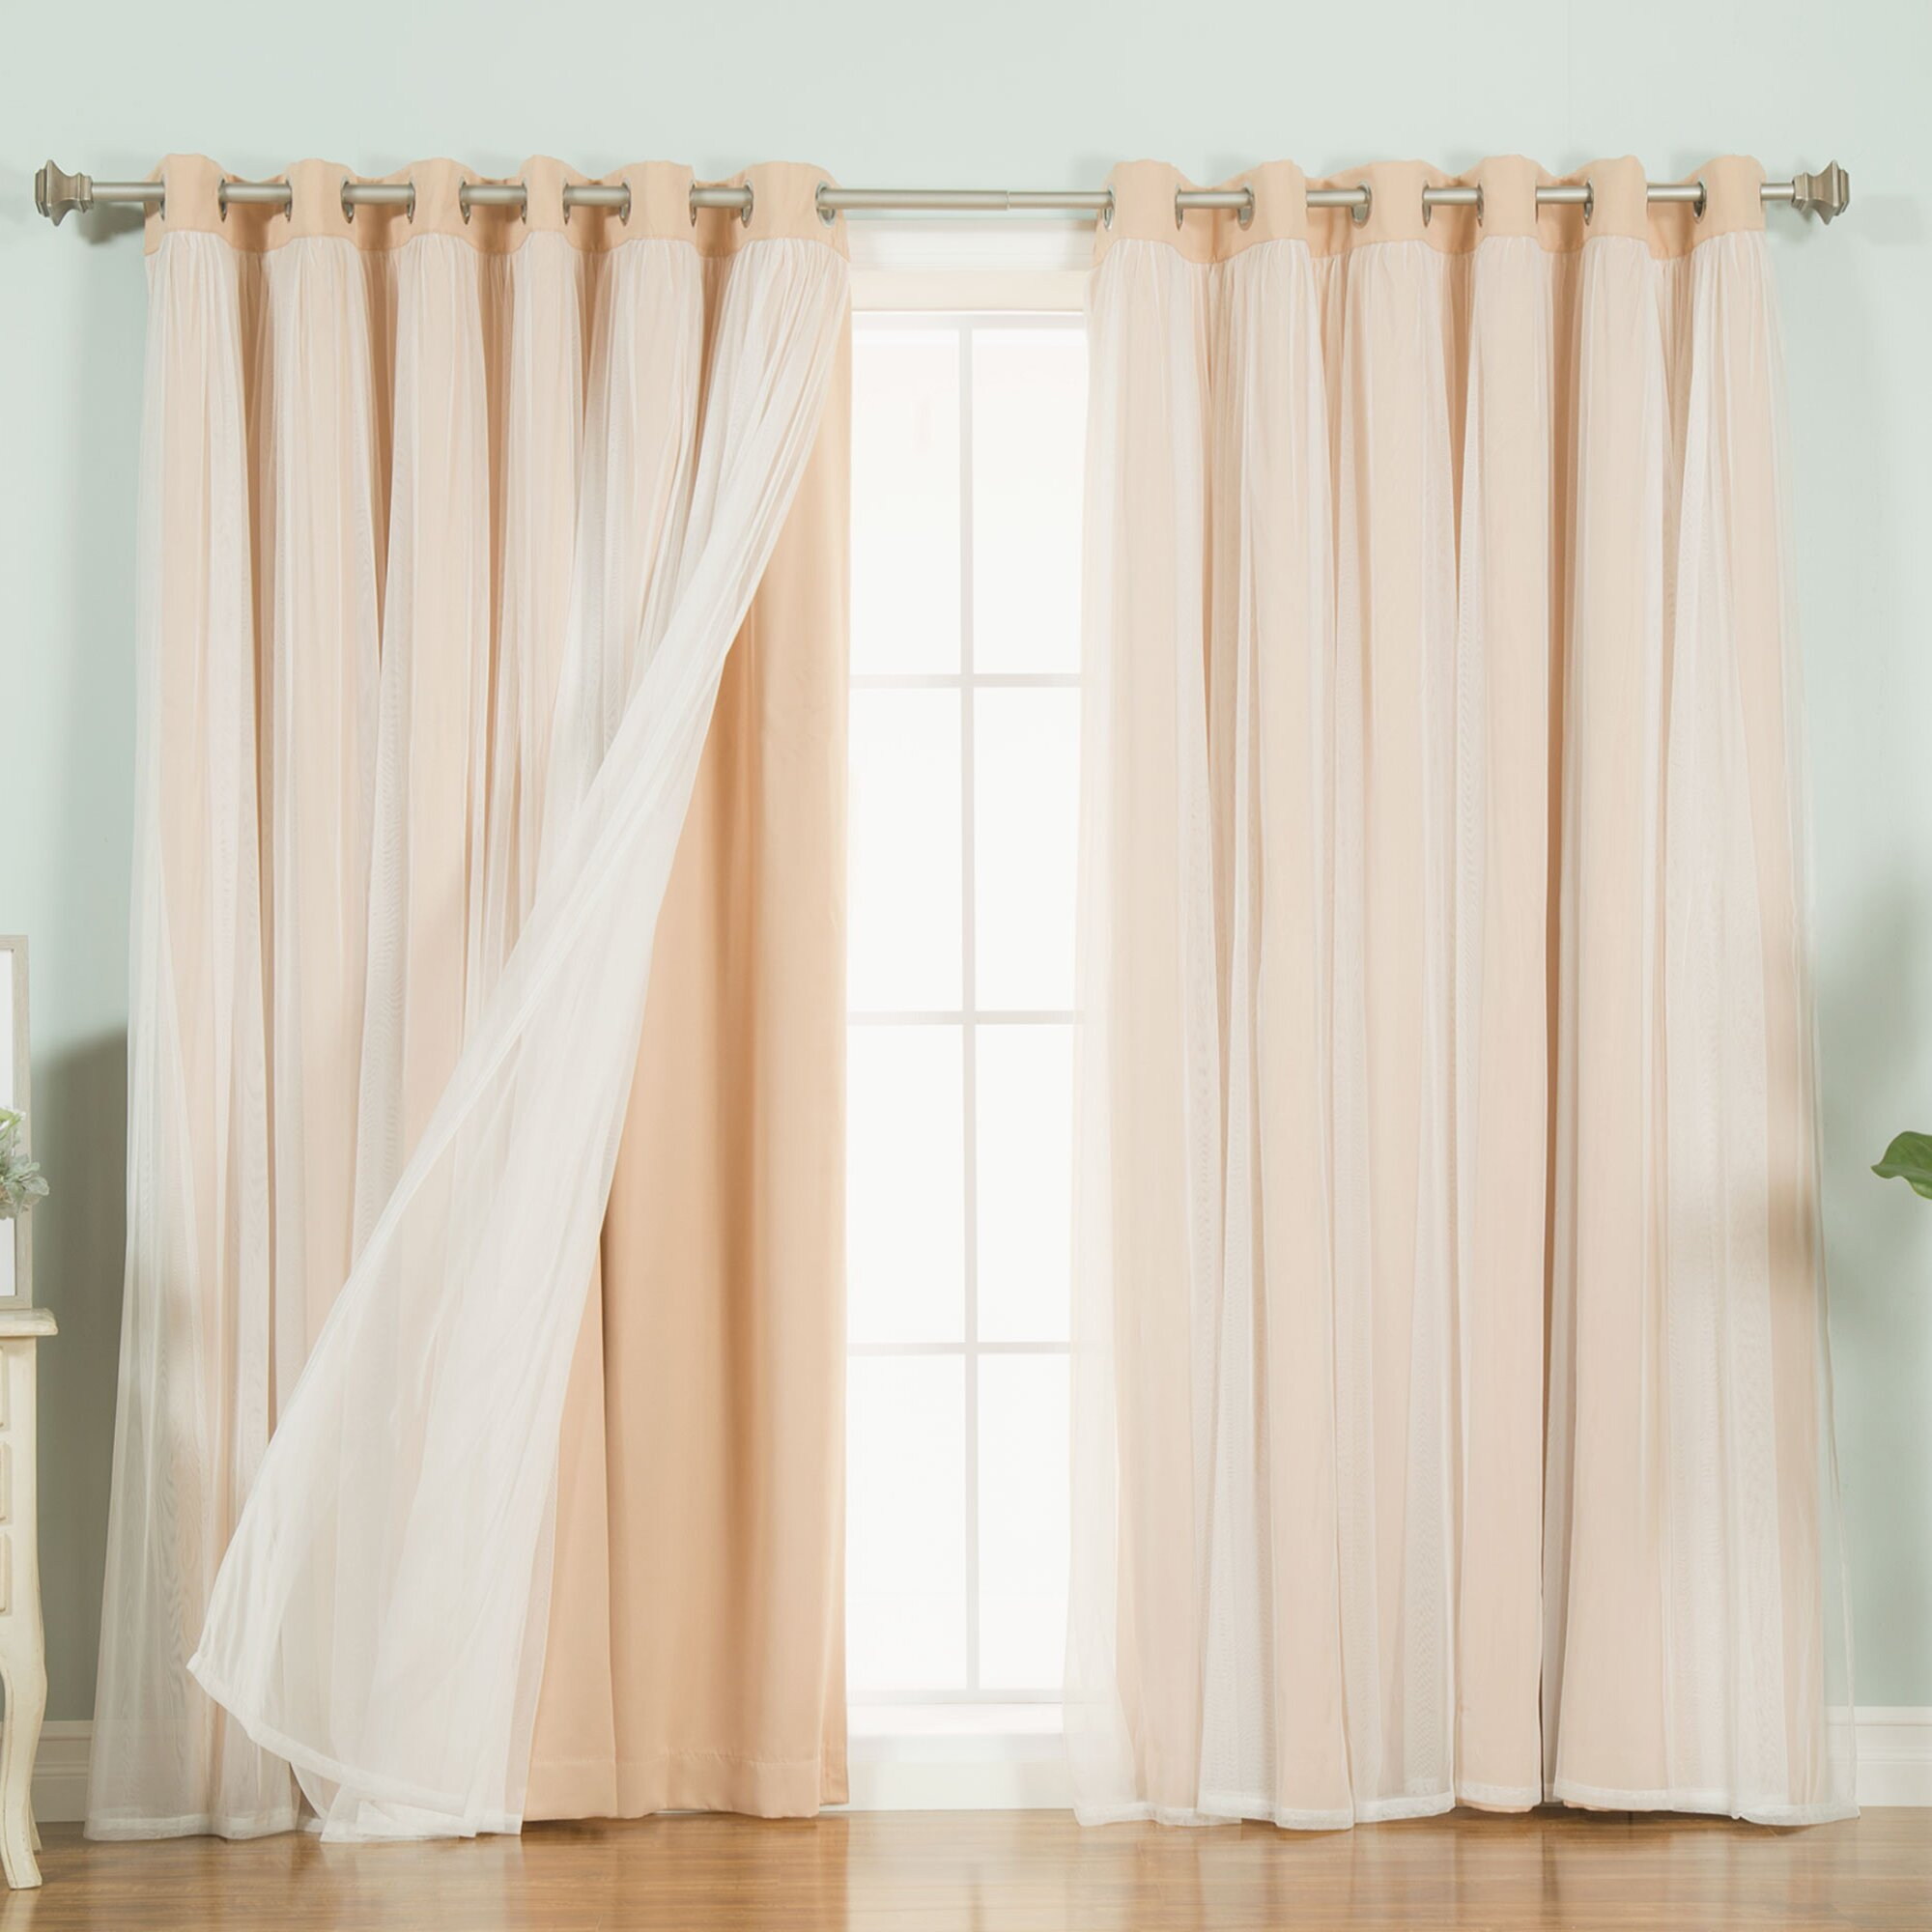 Best Home Fashion Tulle Curtains